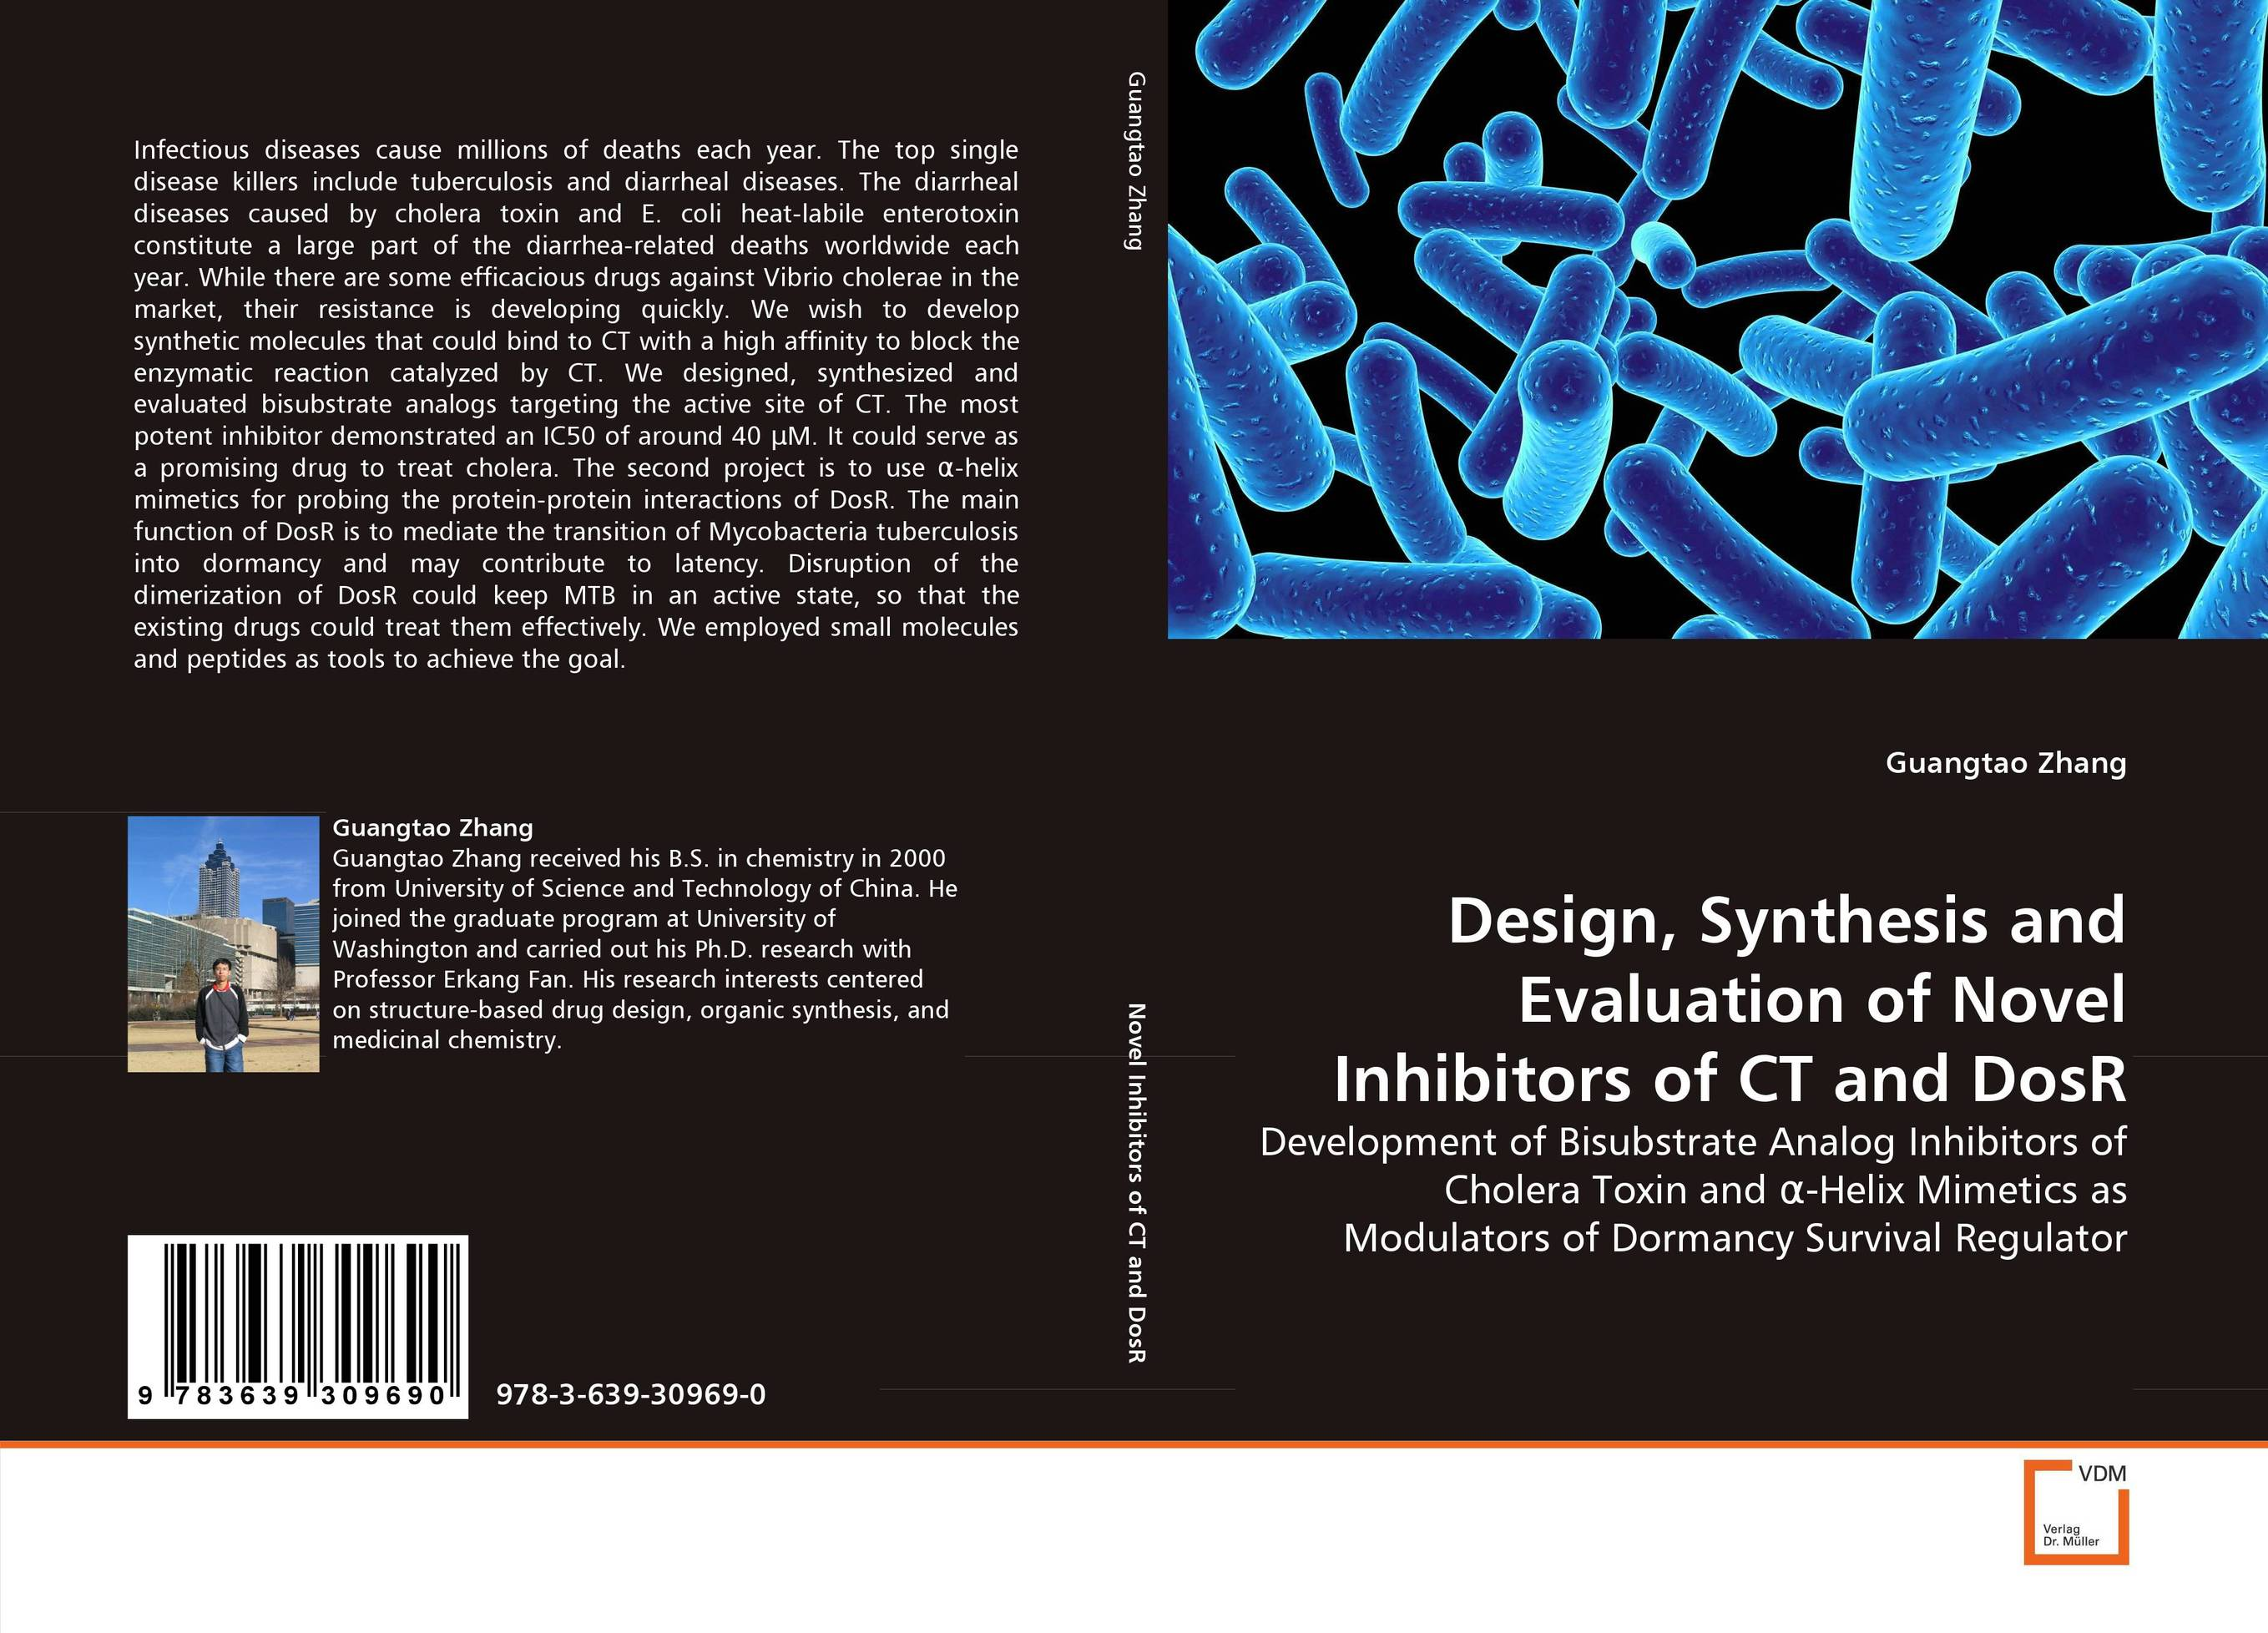 Design, Synthesis and Evaluation of Novel Inhibitors of CT and DosR design and evaluation of microemulsion gel system of nadifloxacin